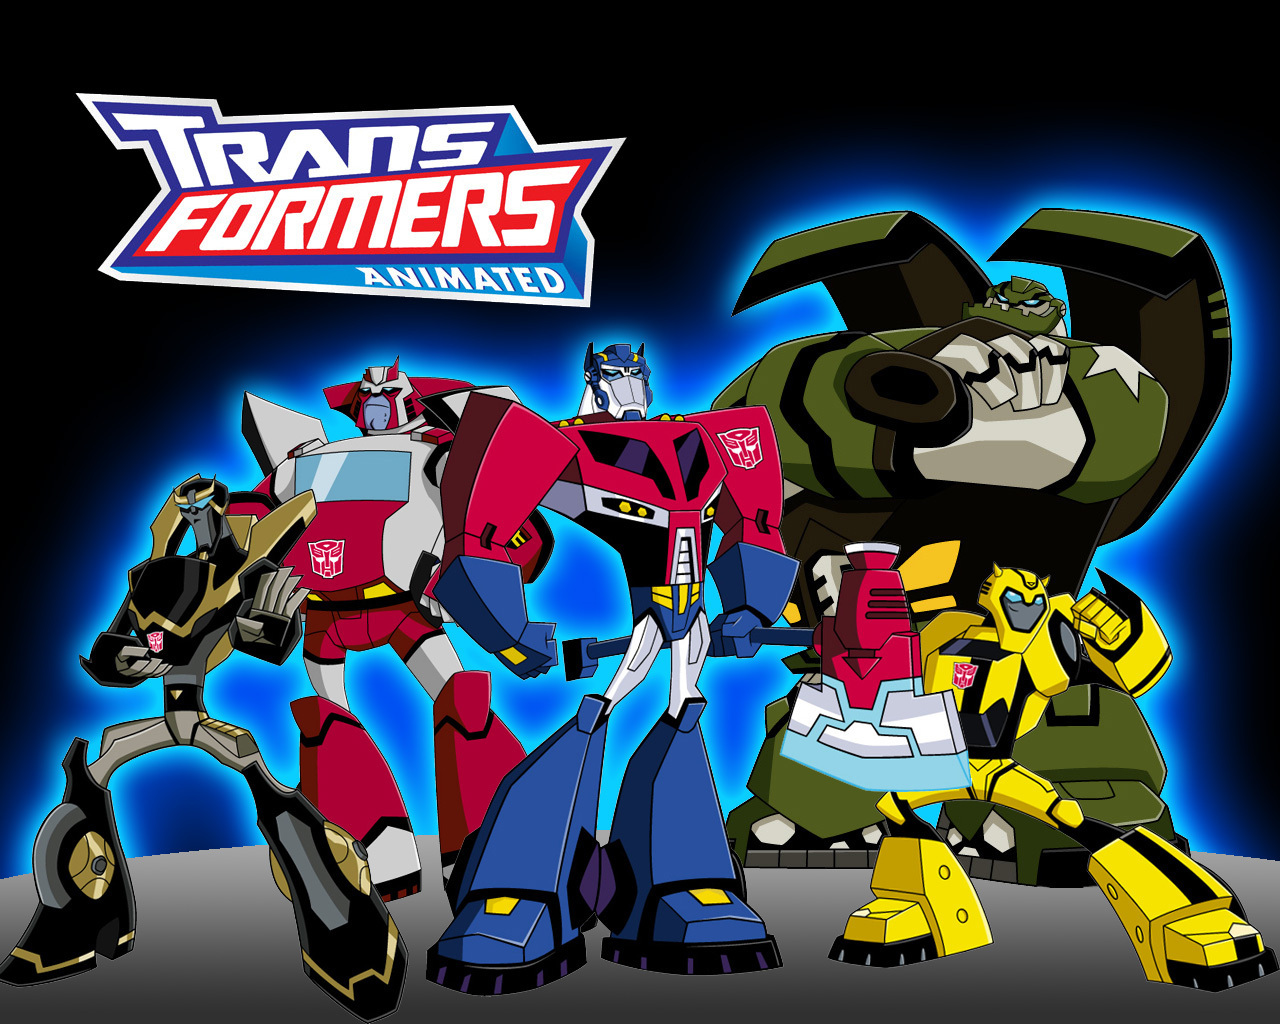 Transformers animated series transformers animated wallpapaer